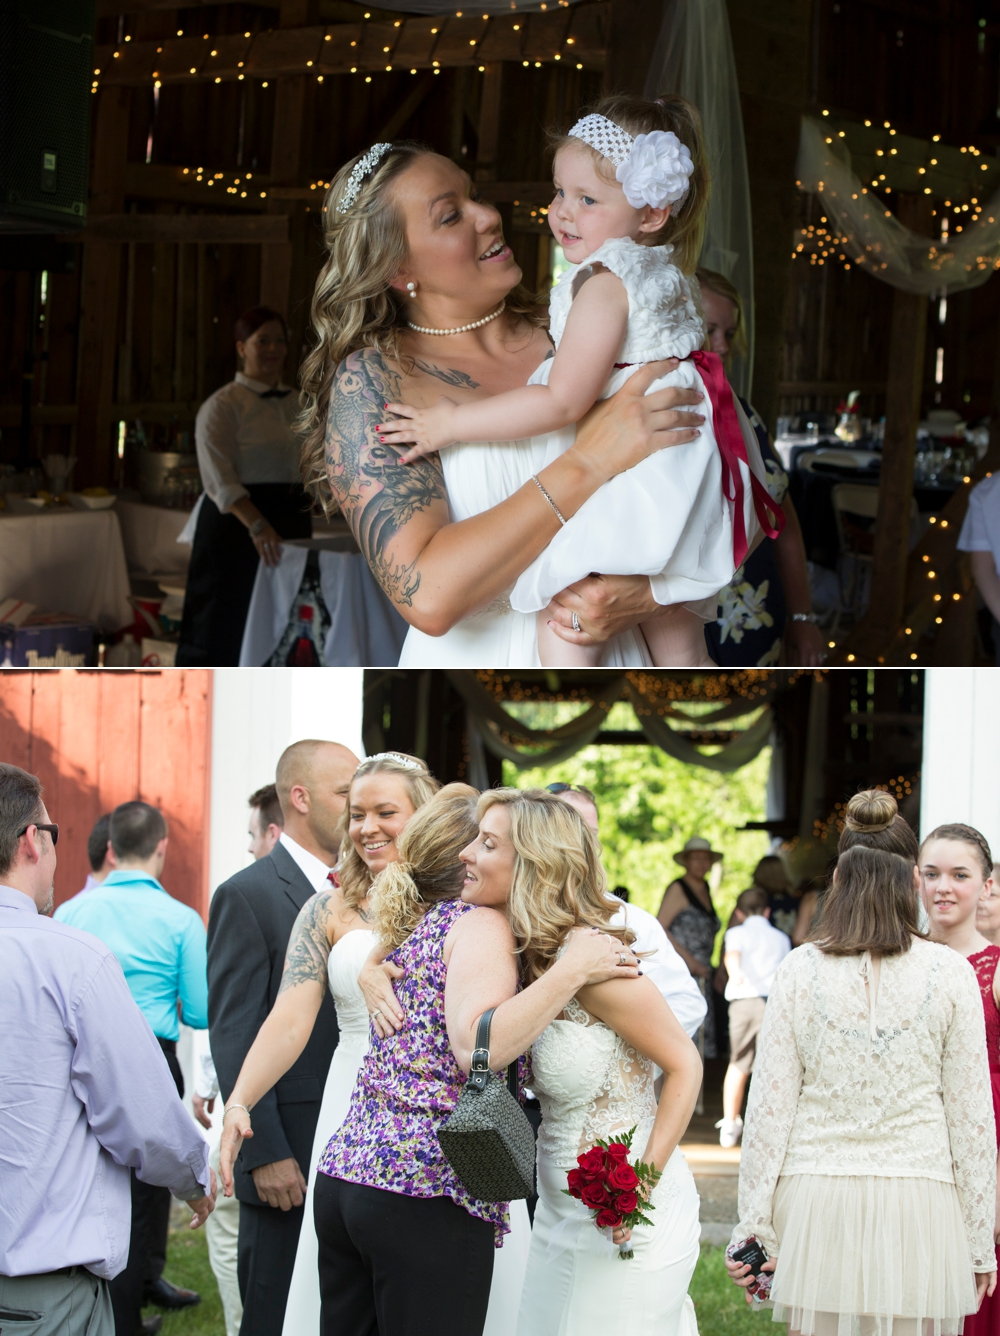 FairbanksFarm_Wedding_Jill&Lori_0016.jpg